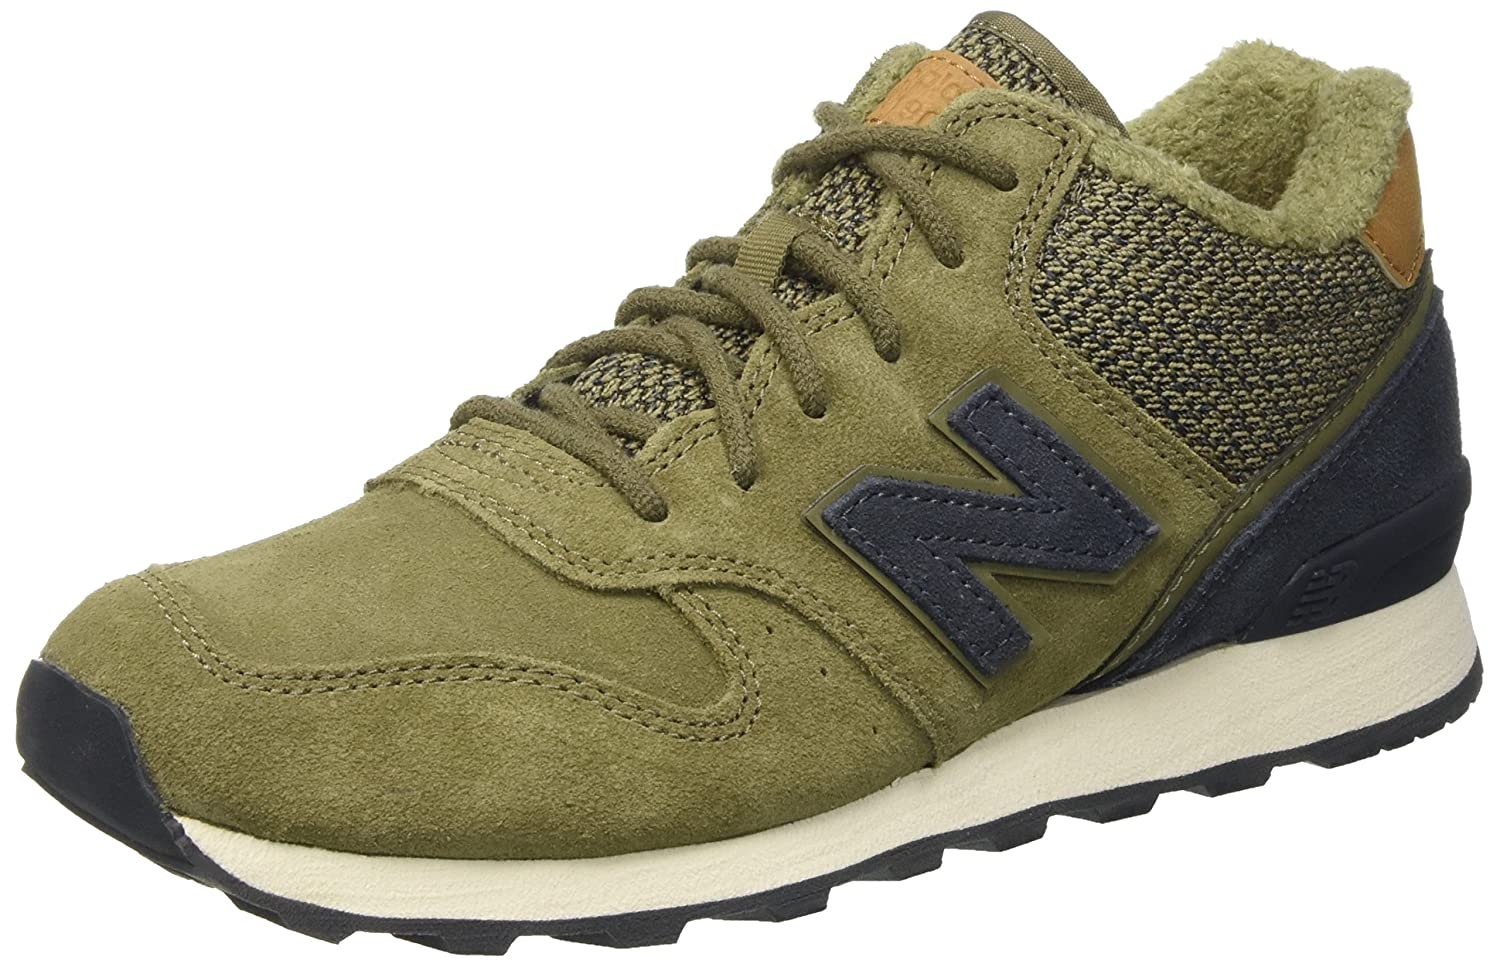 100% Guaranteed For Sale New Balance Women's 996 Mid Hi-Top Sneakers Low Shipping Fee Online ZPkwmuMiu